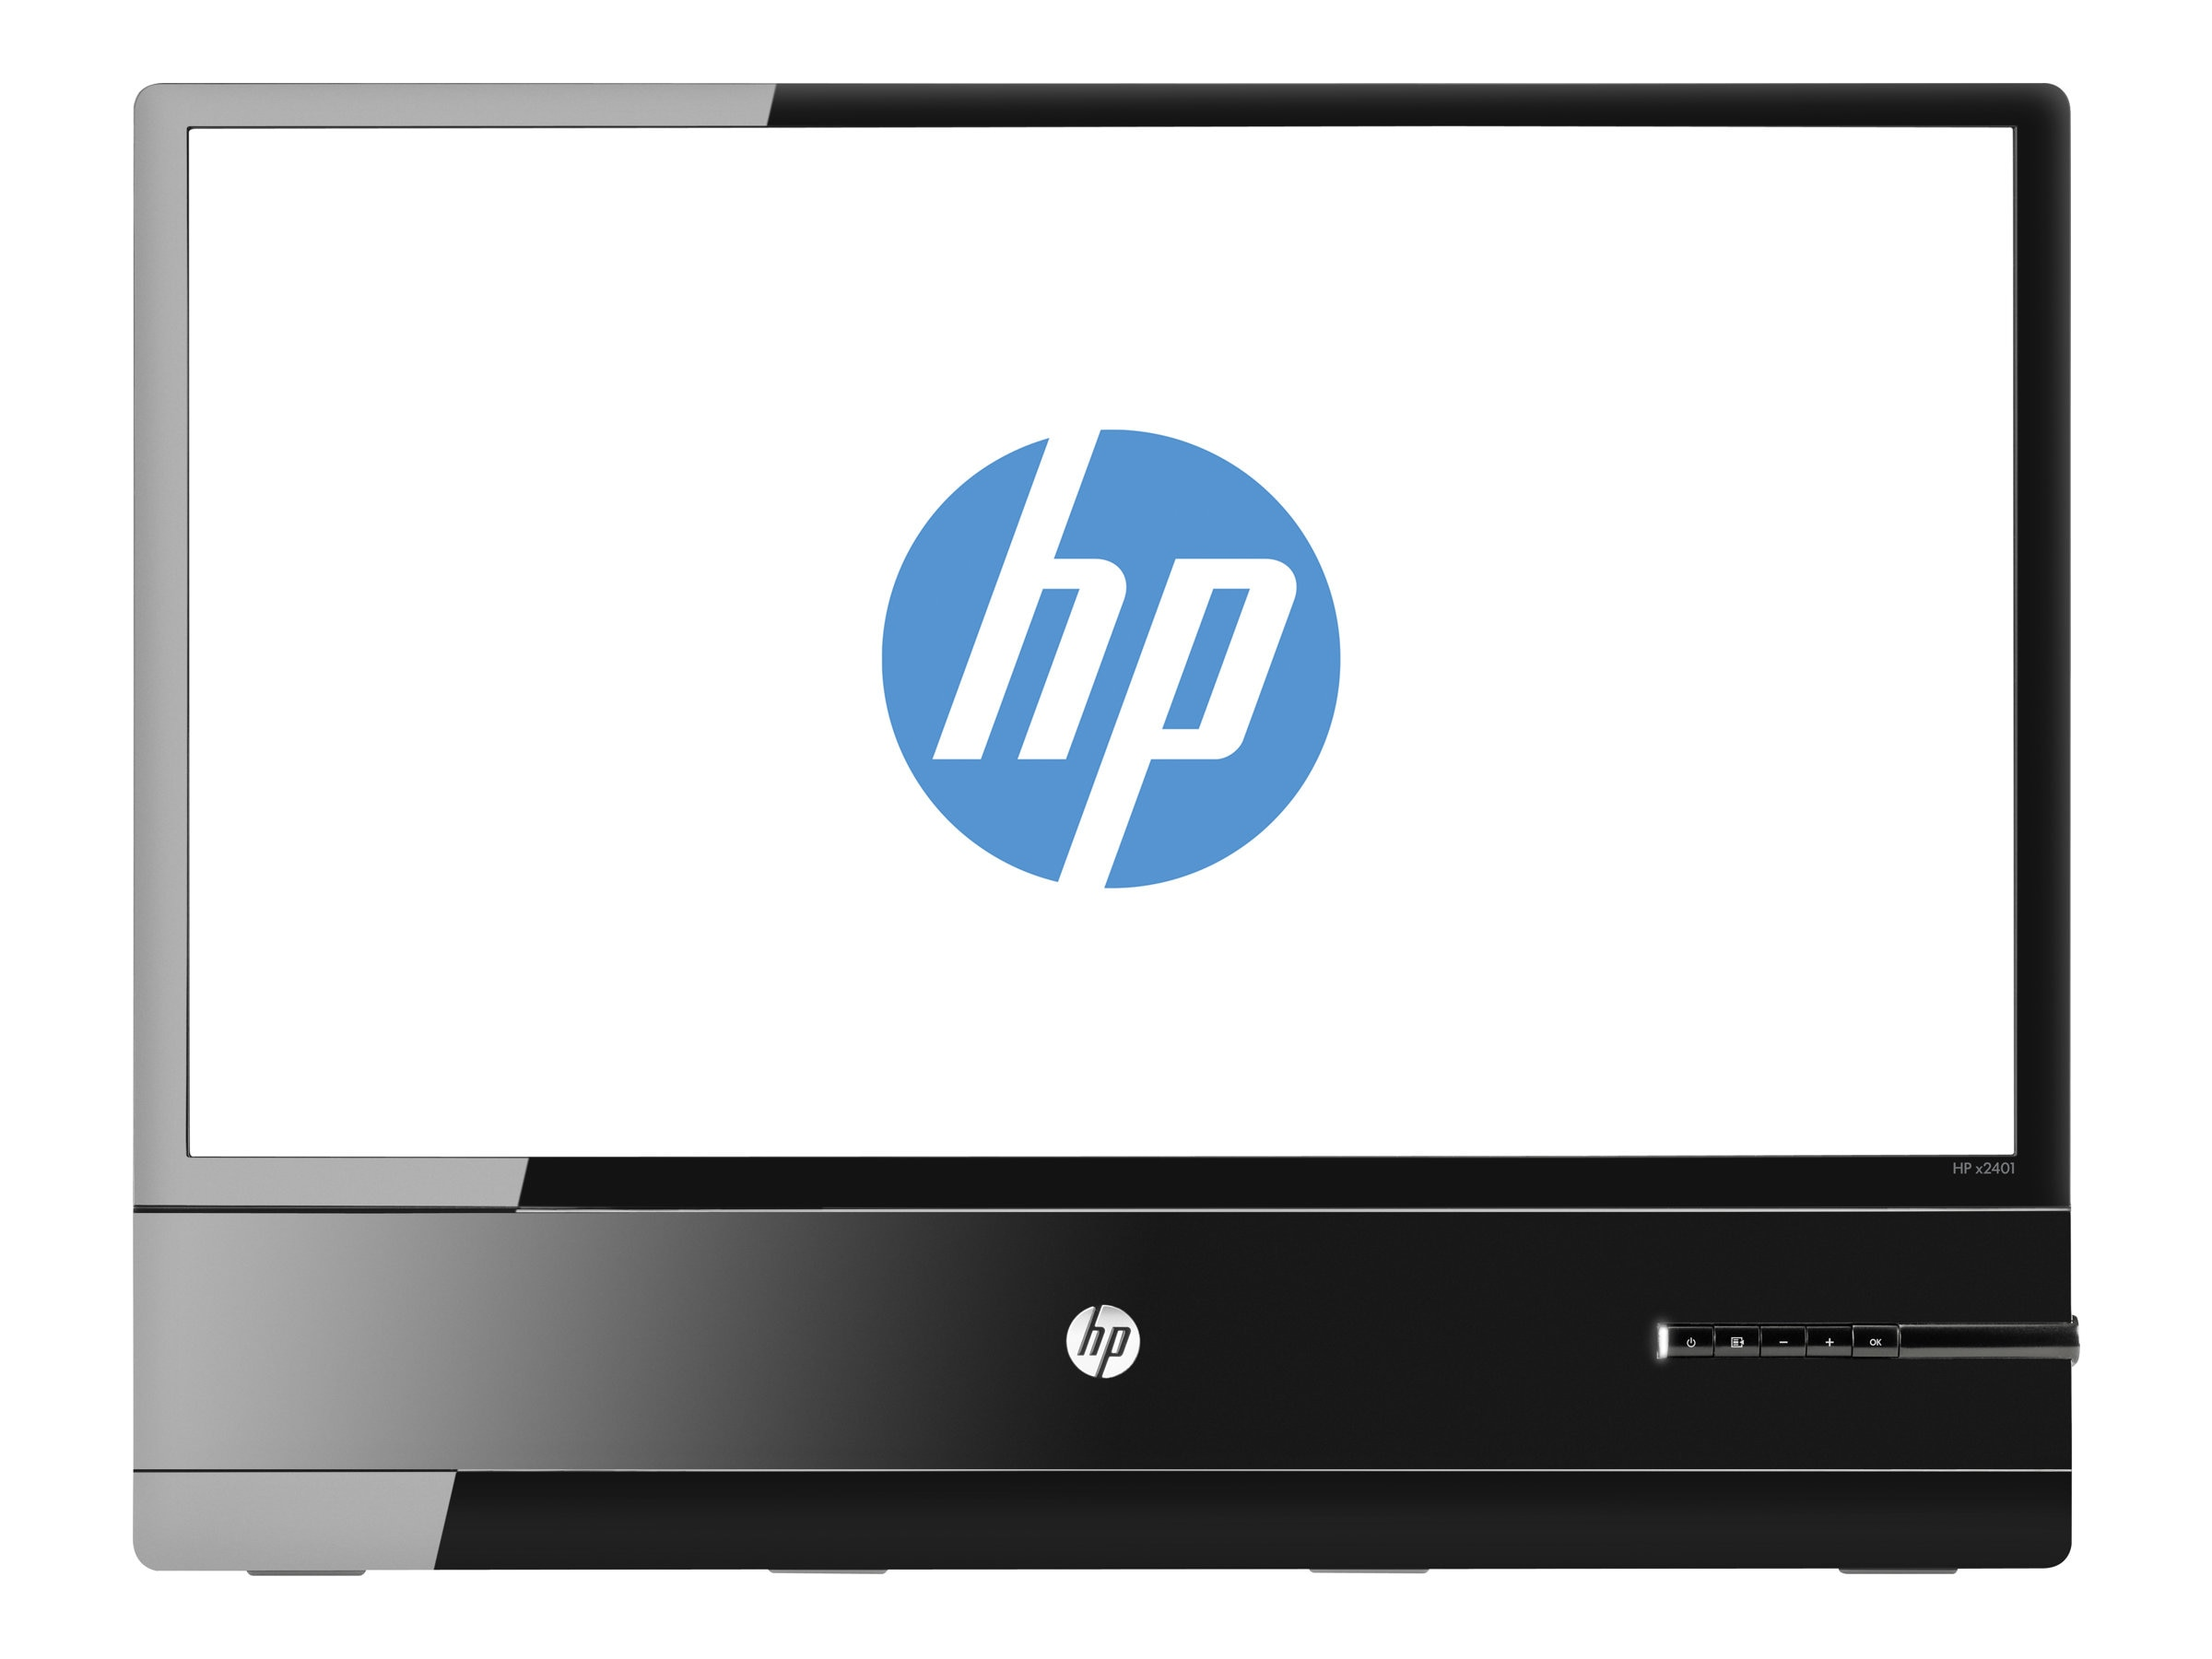 HP 24 X2401 Full HD LED-LCD Monitor, Black, B6R49AS#ABA, 15175727, Monitors - LED-LCD